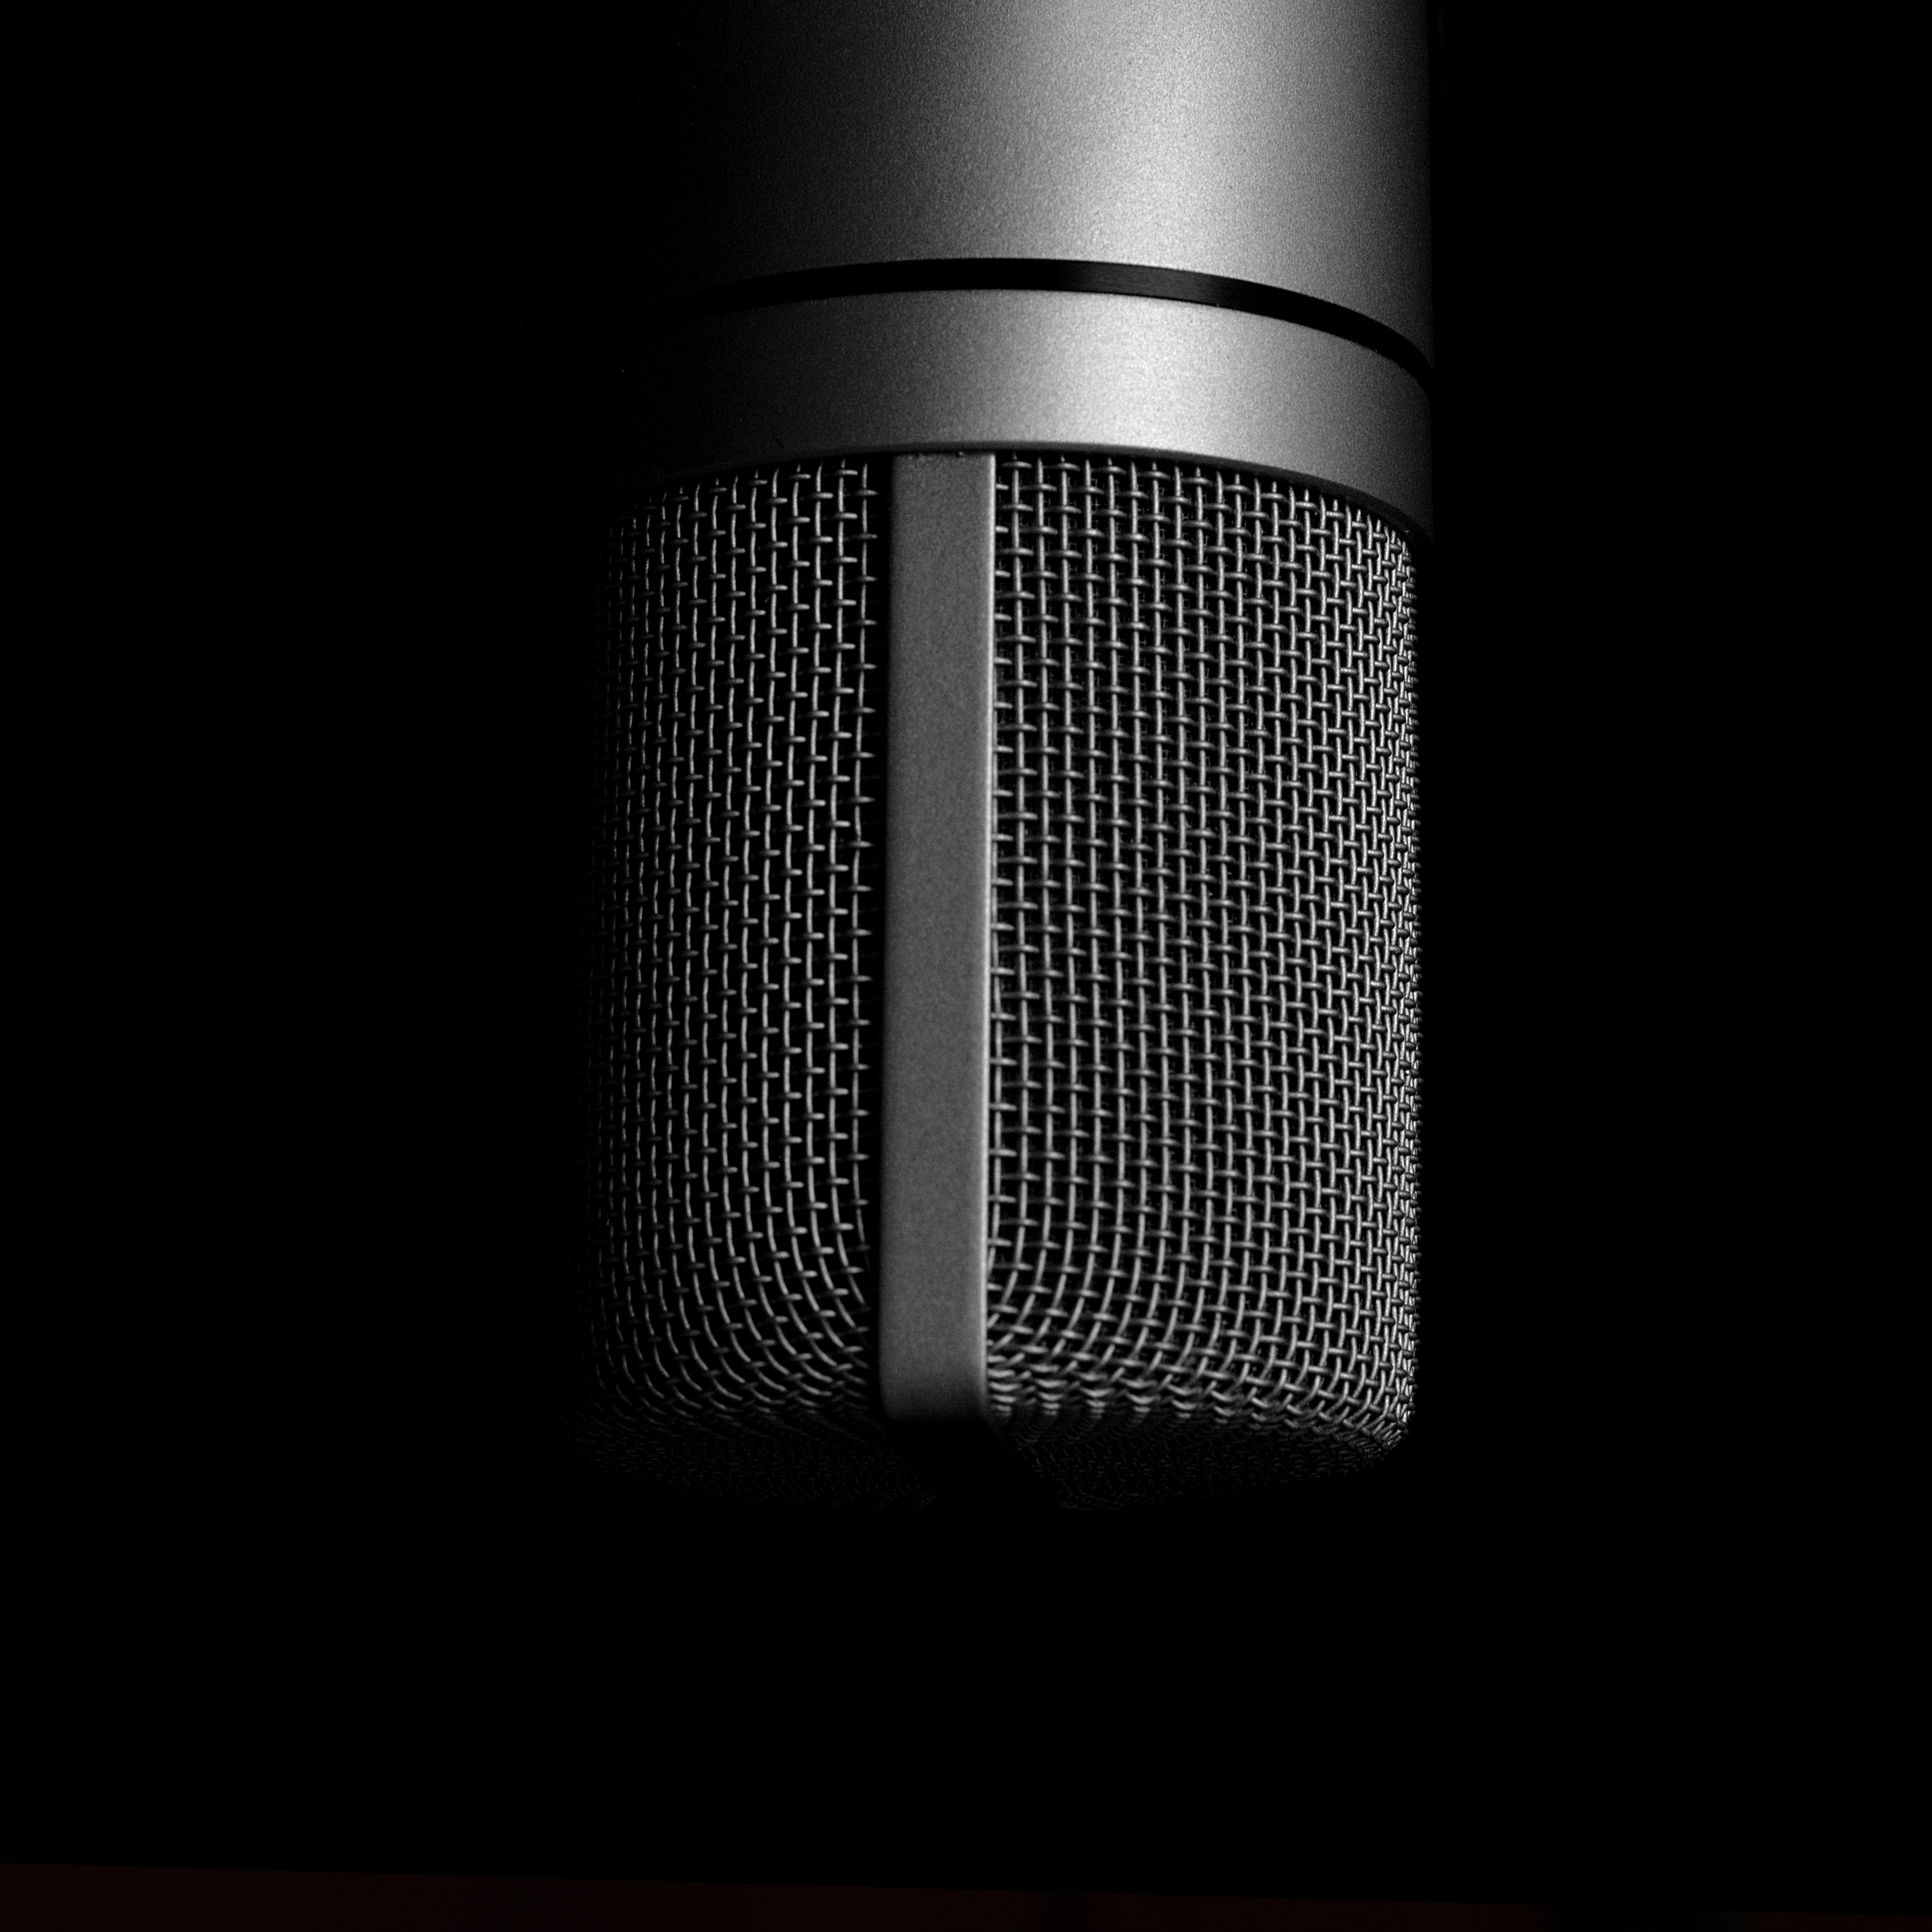 Black Headset Hanging On Black And Gray Microphone · Free